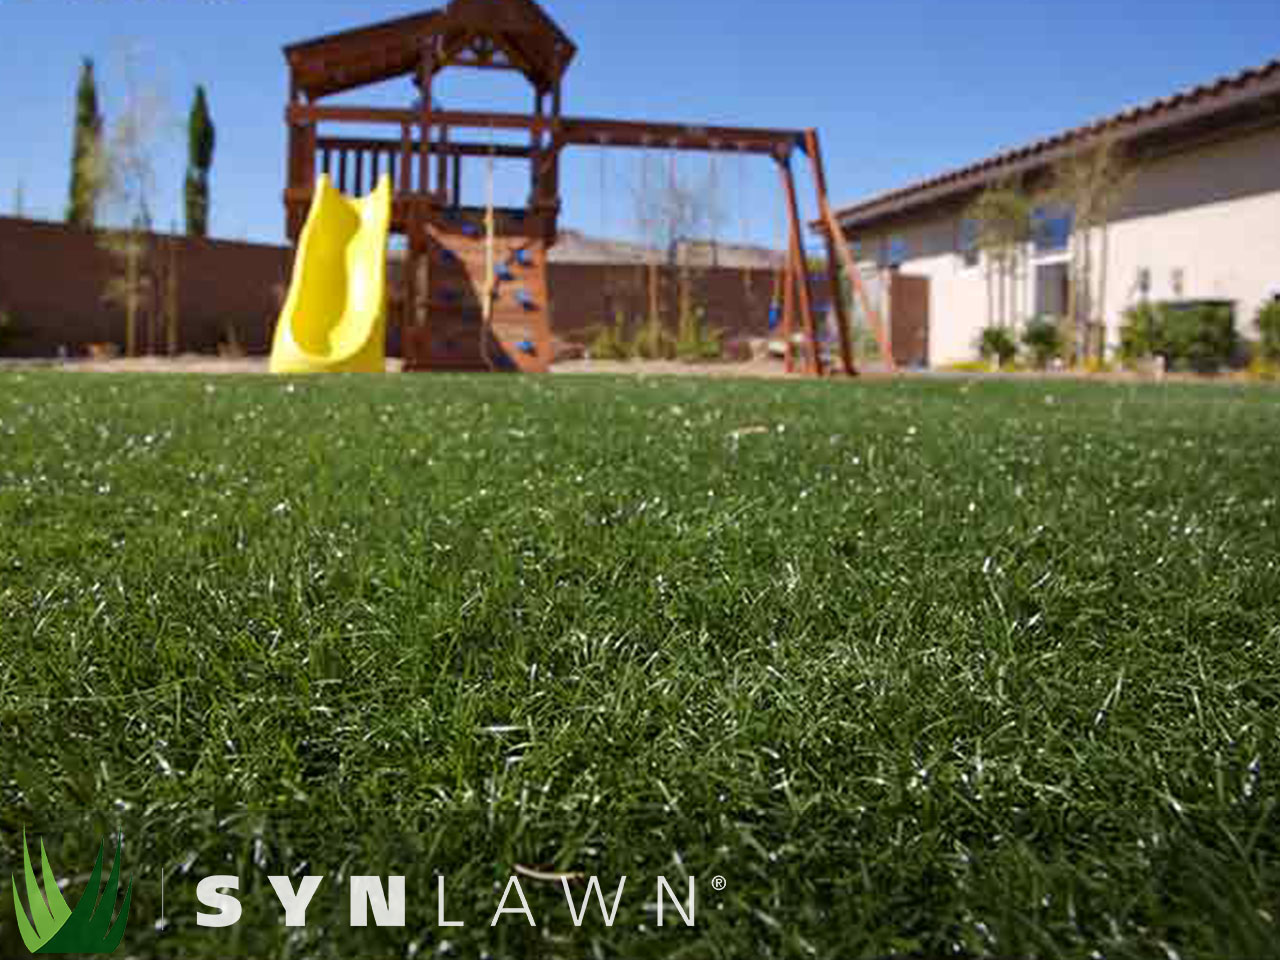 SYNLawn Playground Photo 38